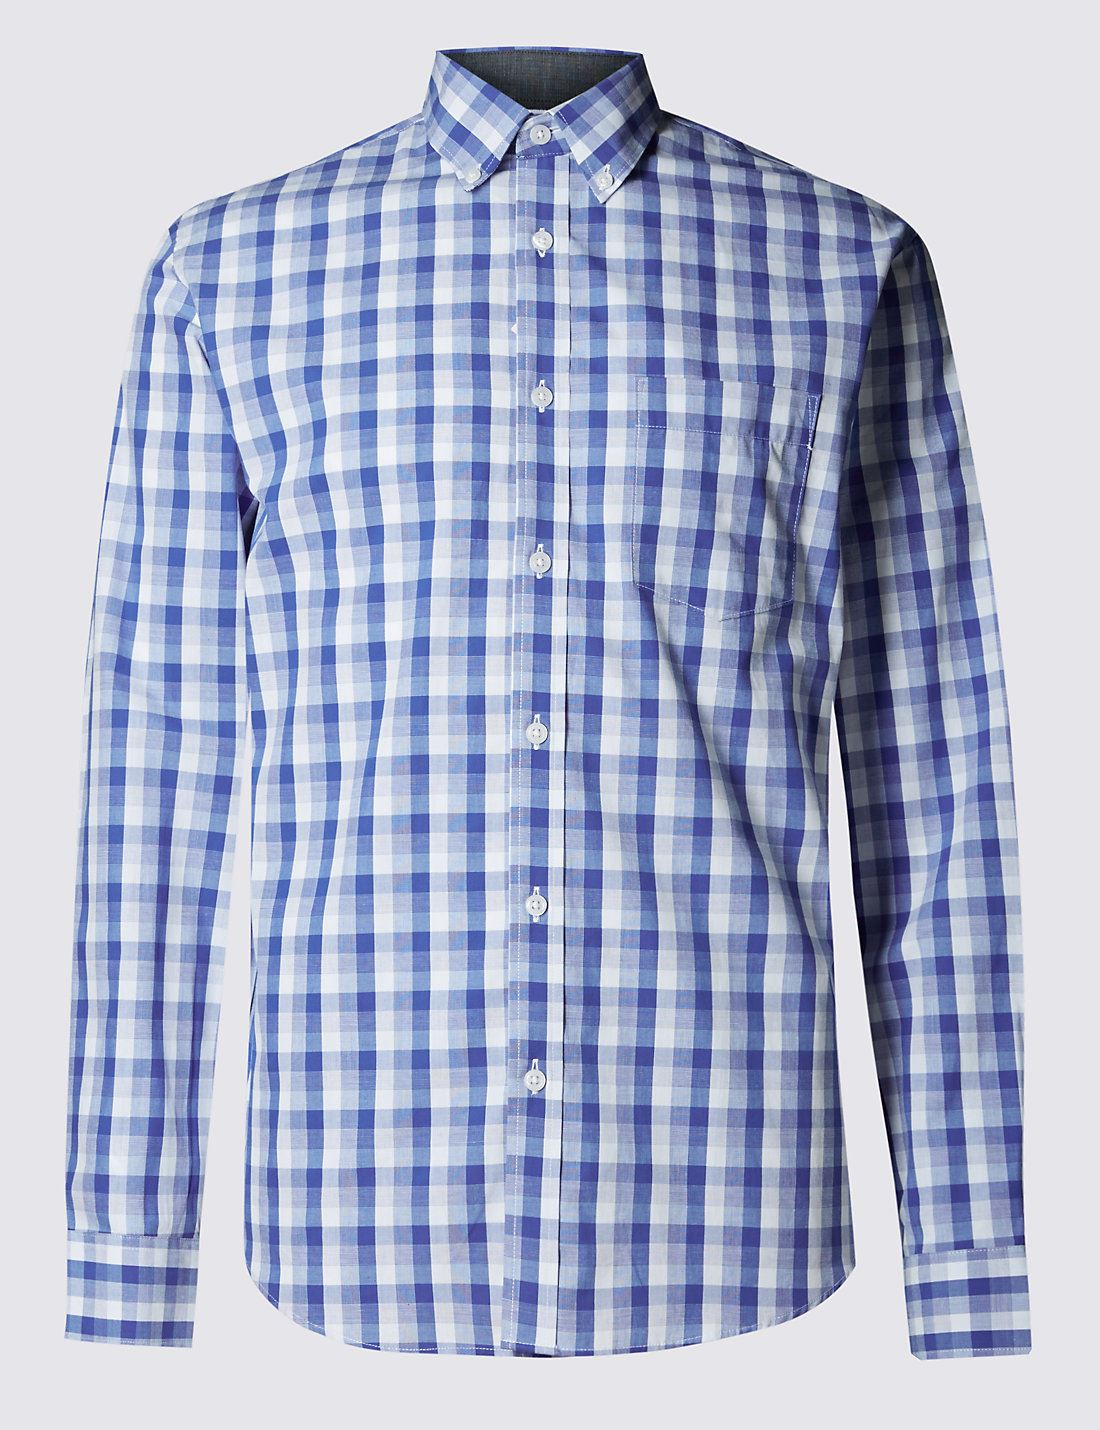 EX-M-amp-S-Marks-And-Spencer-Pure-Cotton-Tonal-Checked-Shirt thumbnail 9